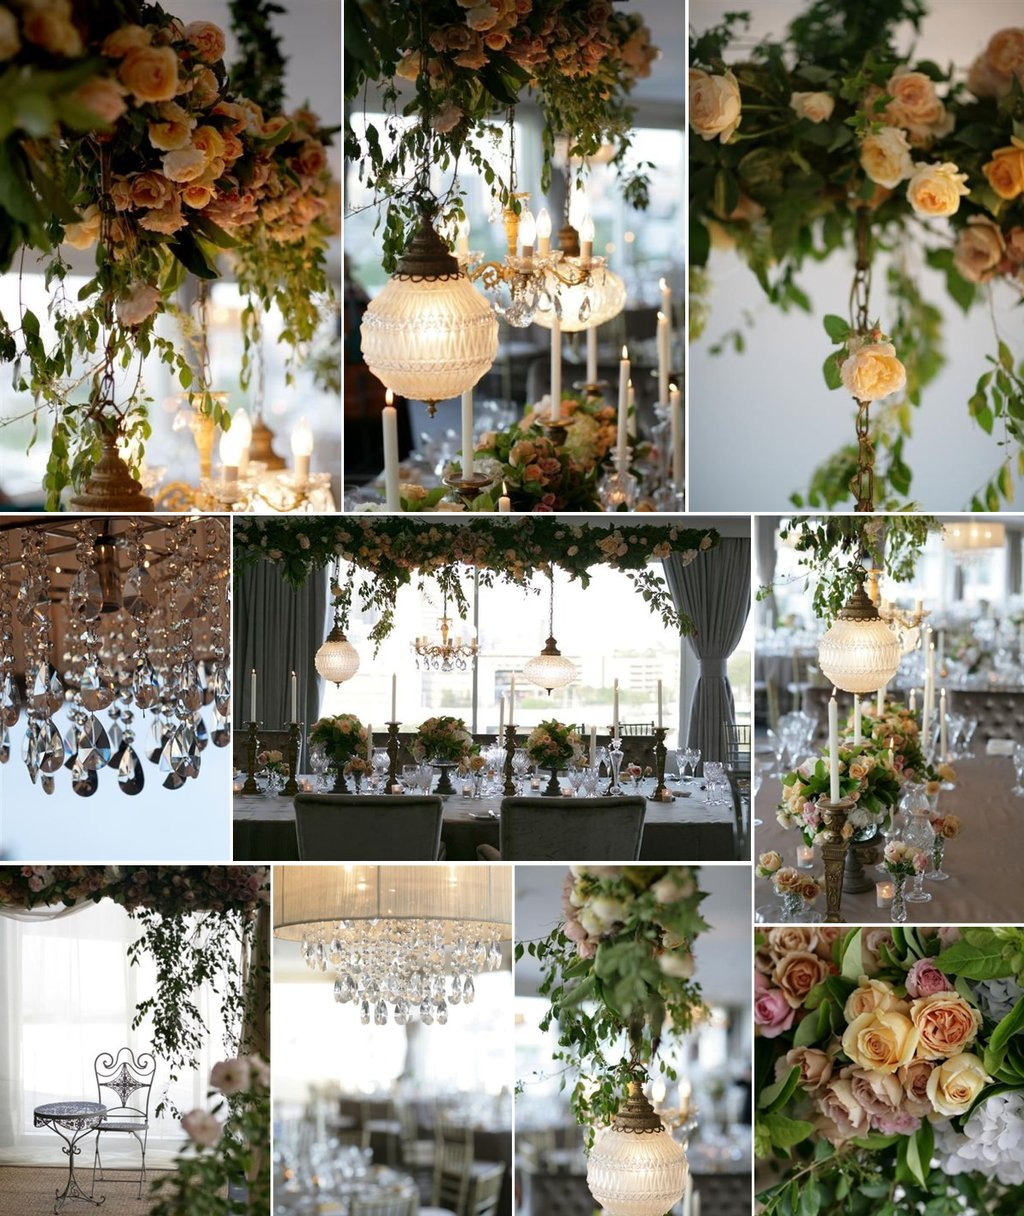 Elegant-hanging-wedding-reception-decor-flowers-centerpieces-chandeliers.full